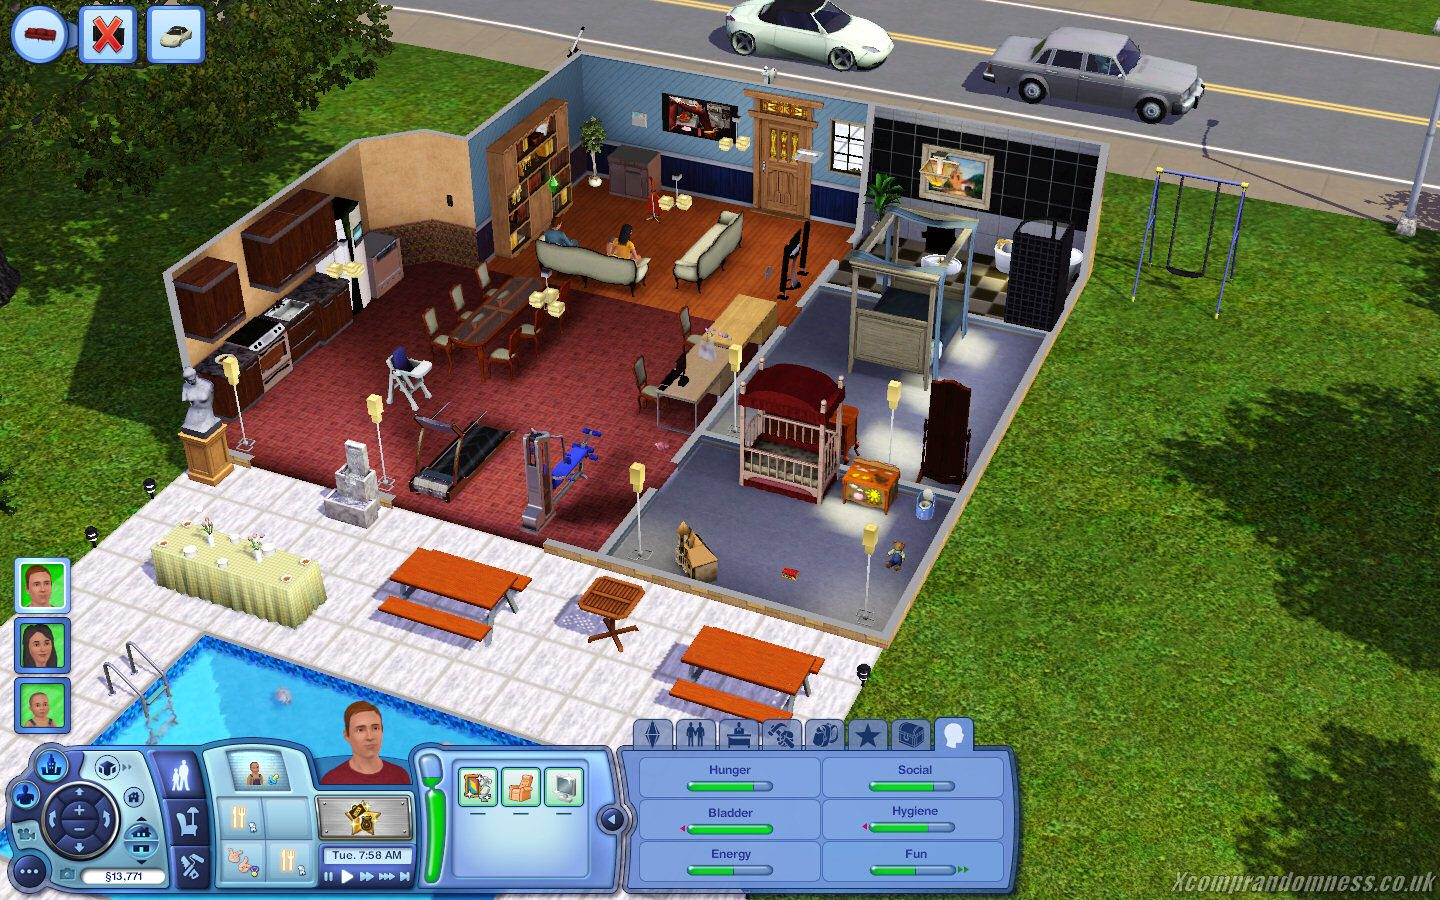 The Sims 3 image #2